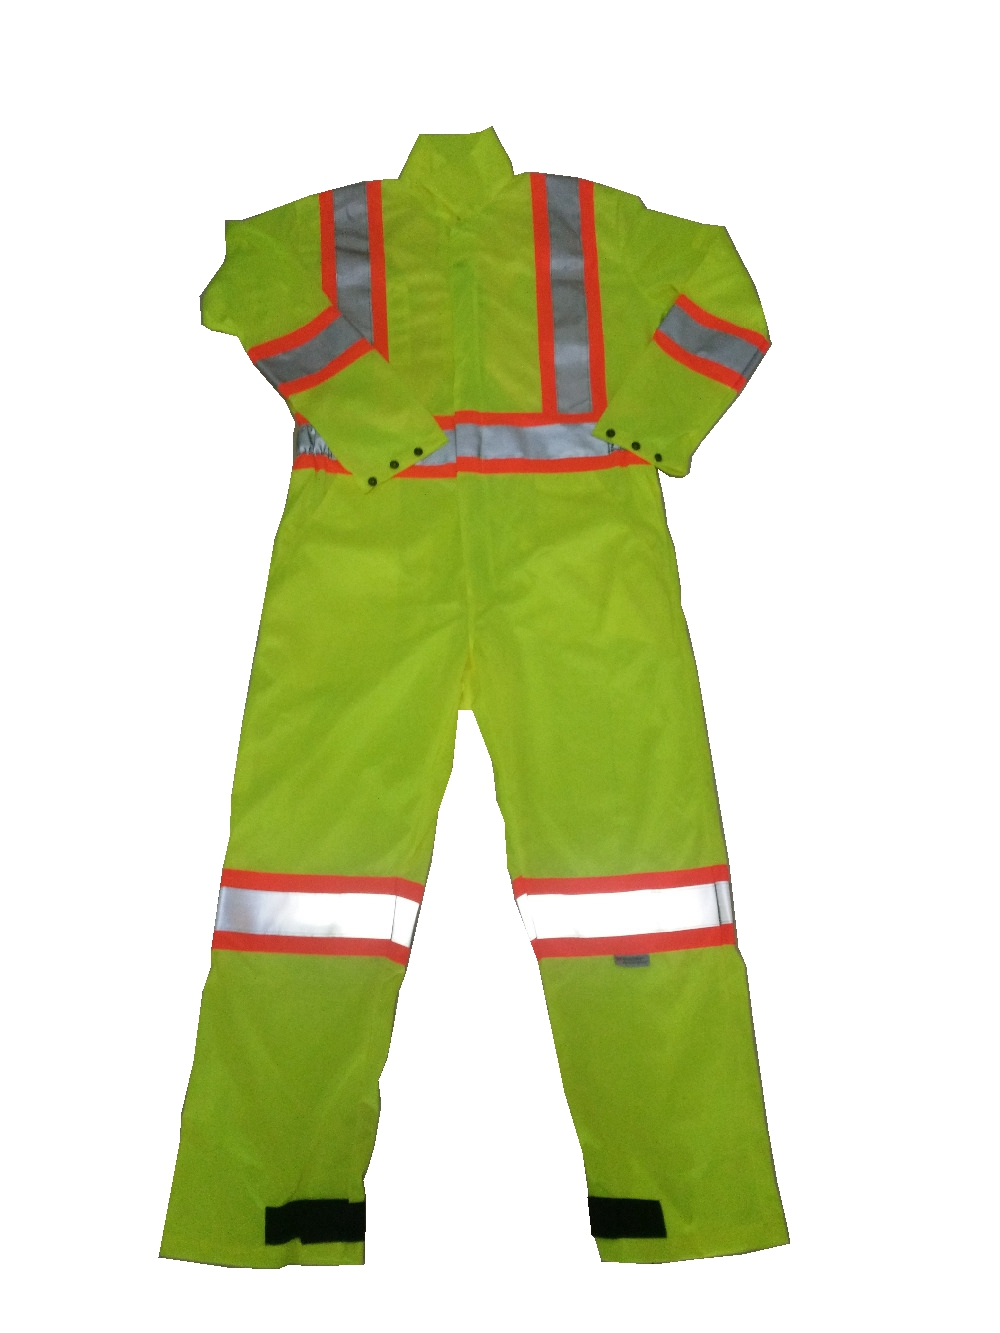 Fluorescence Yellow High Visibility Safety workwear Hi Viz Work Coat coverall workwear coveralls suits w era часы наклейка кремль  45х193 см   50 3n8 xc